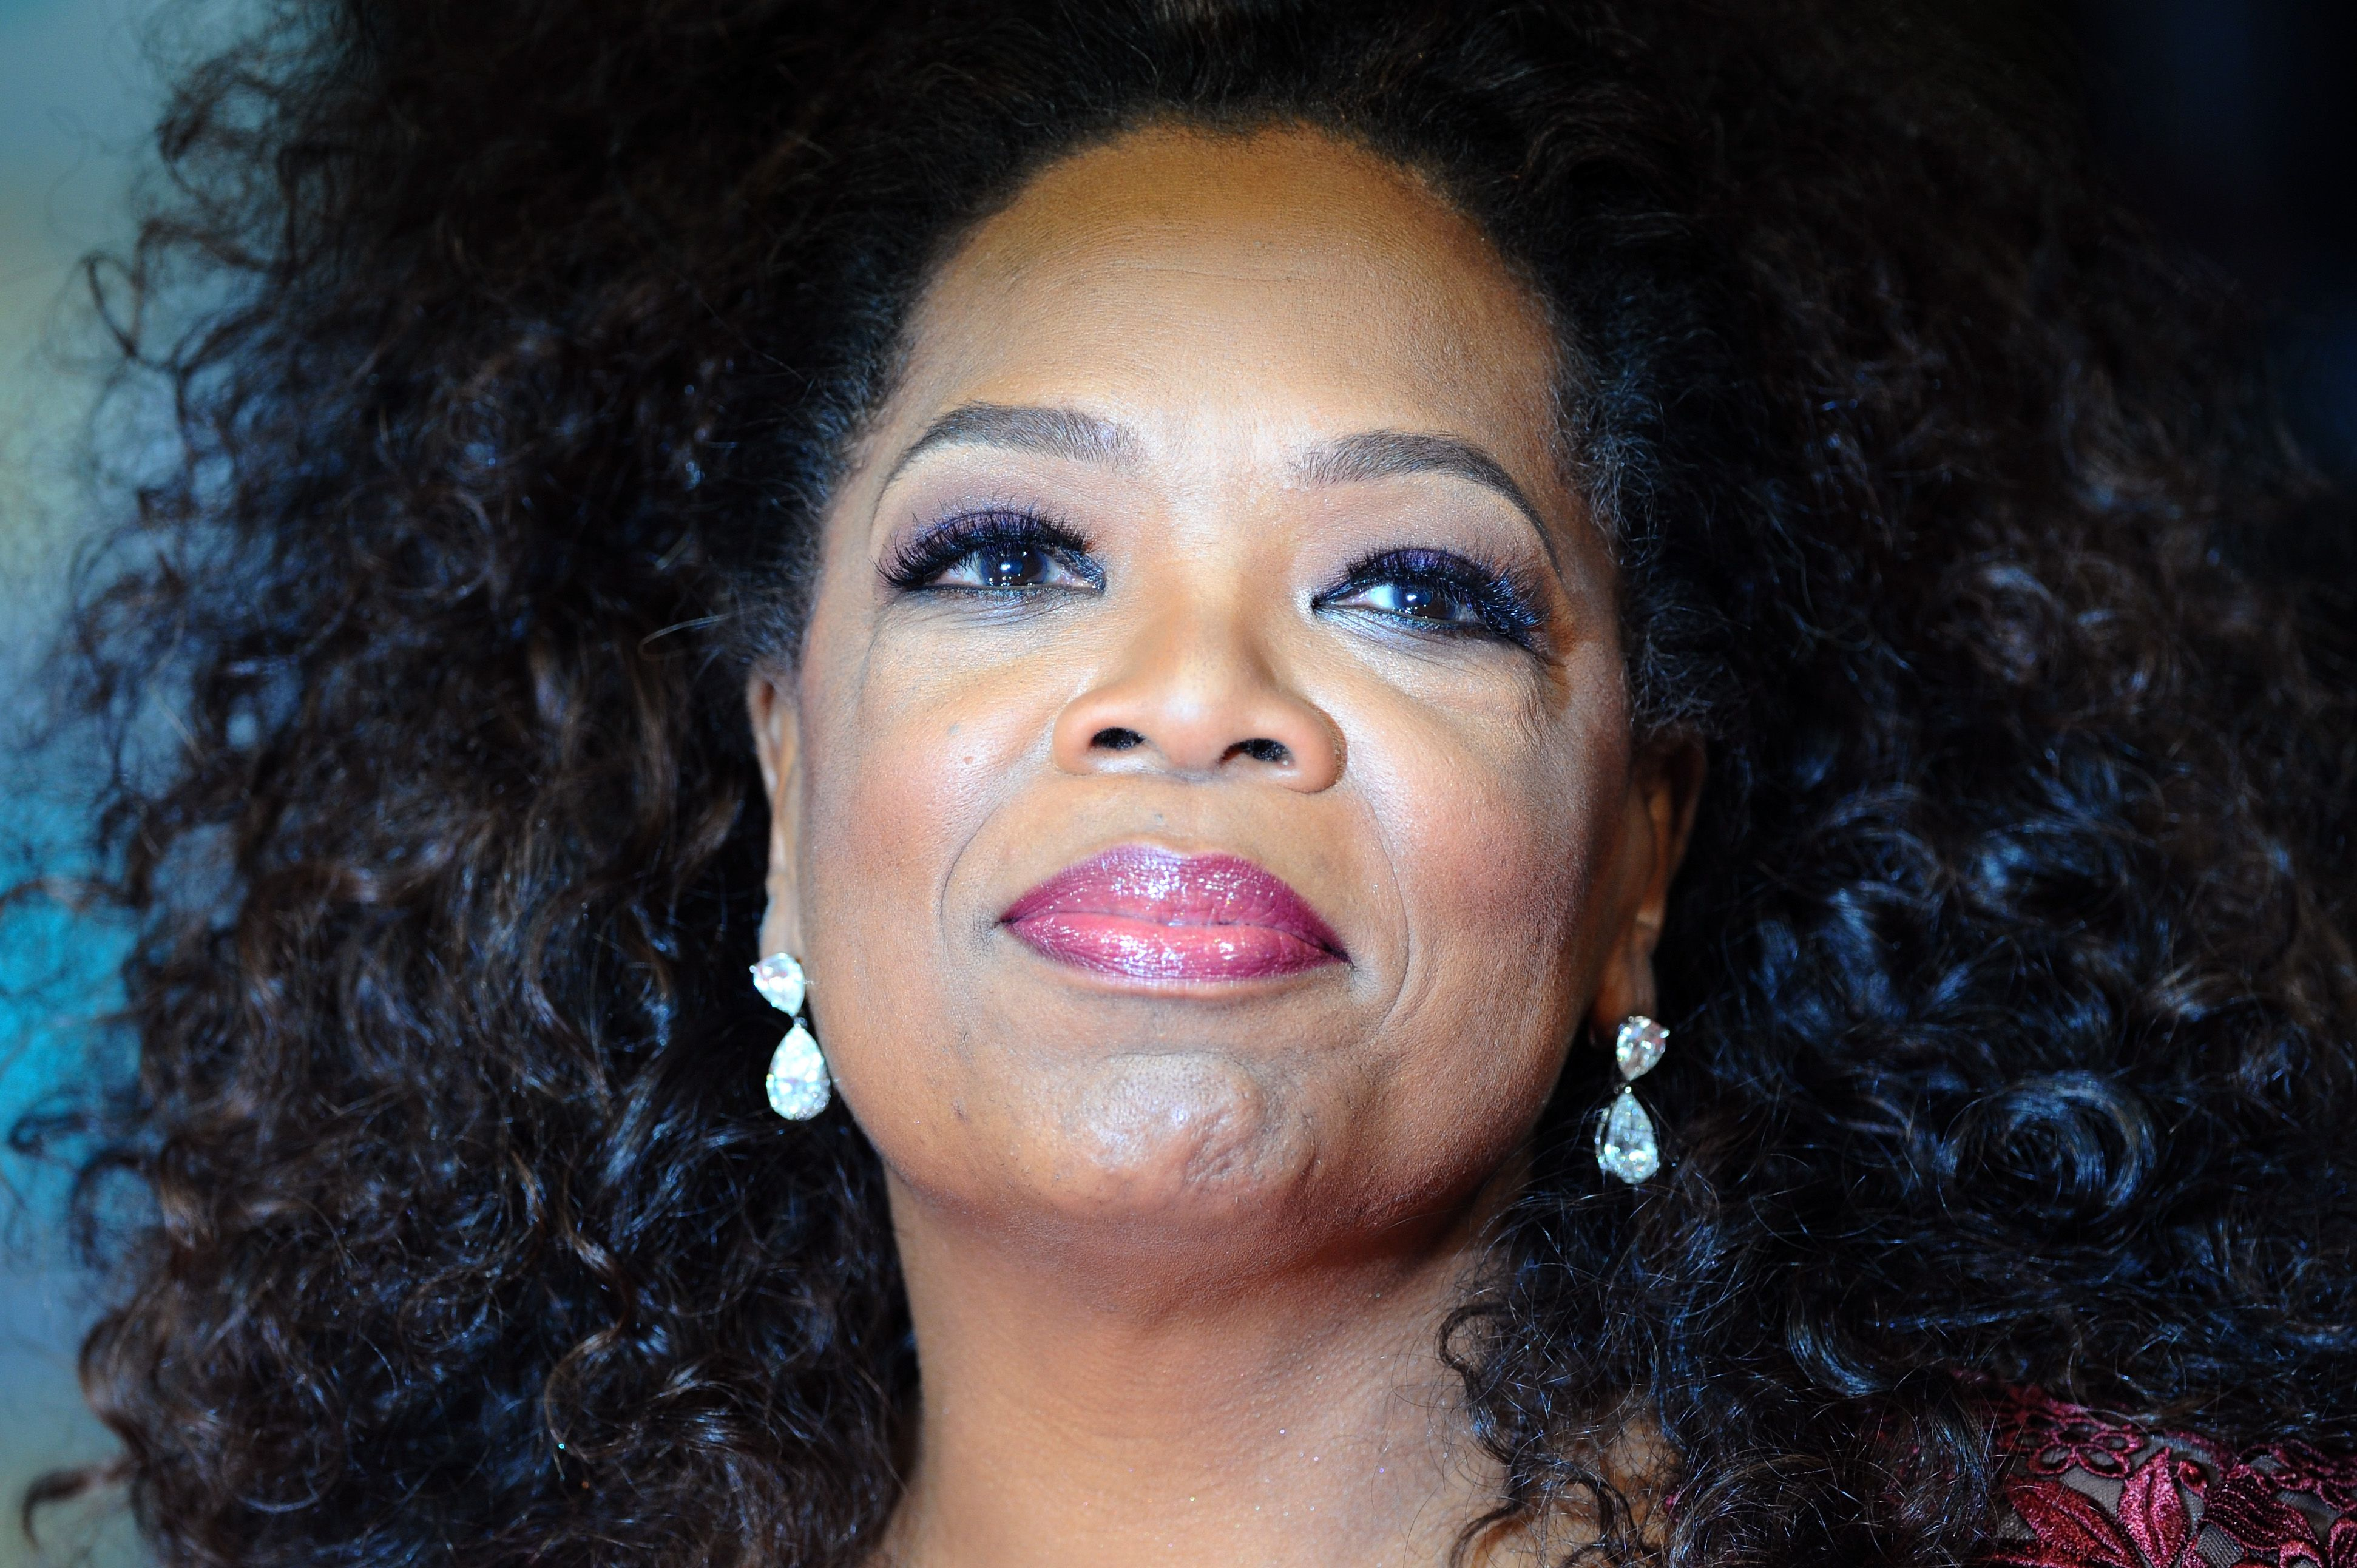 Oprah Winfrey at the EE British Academy Film Awards in 2014 in London | Source: Getty Images